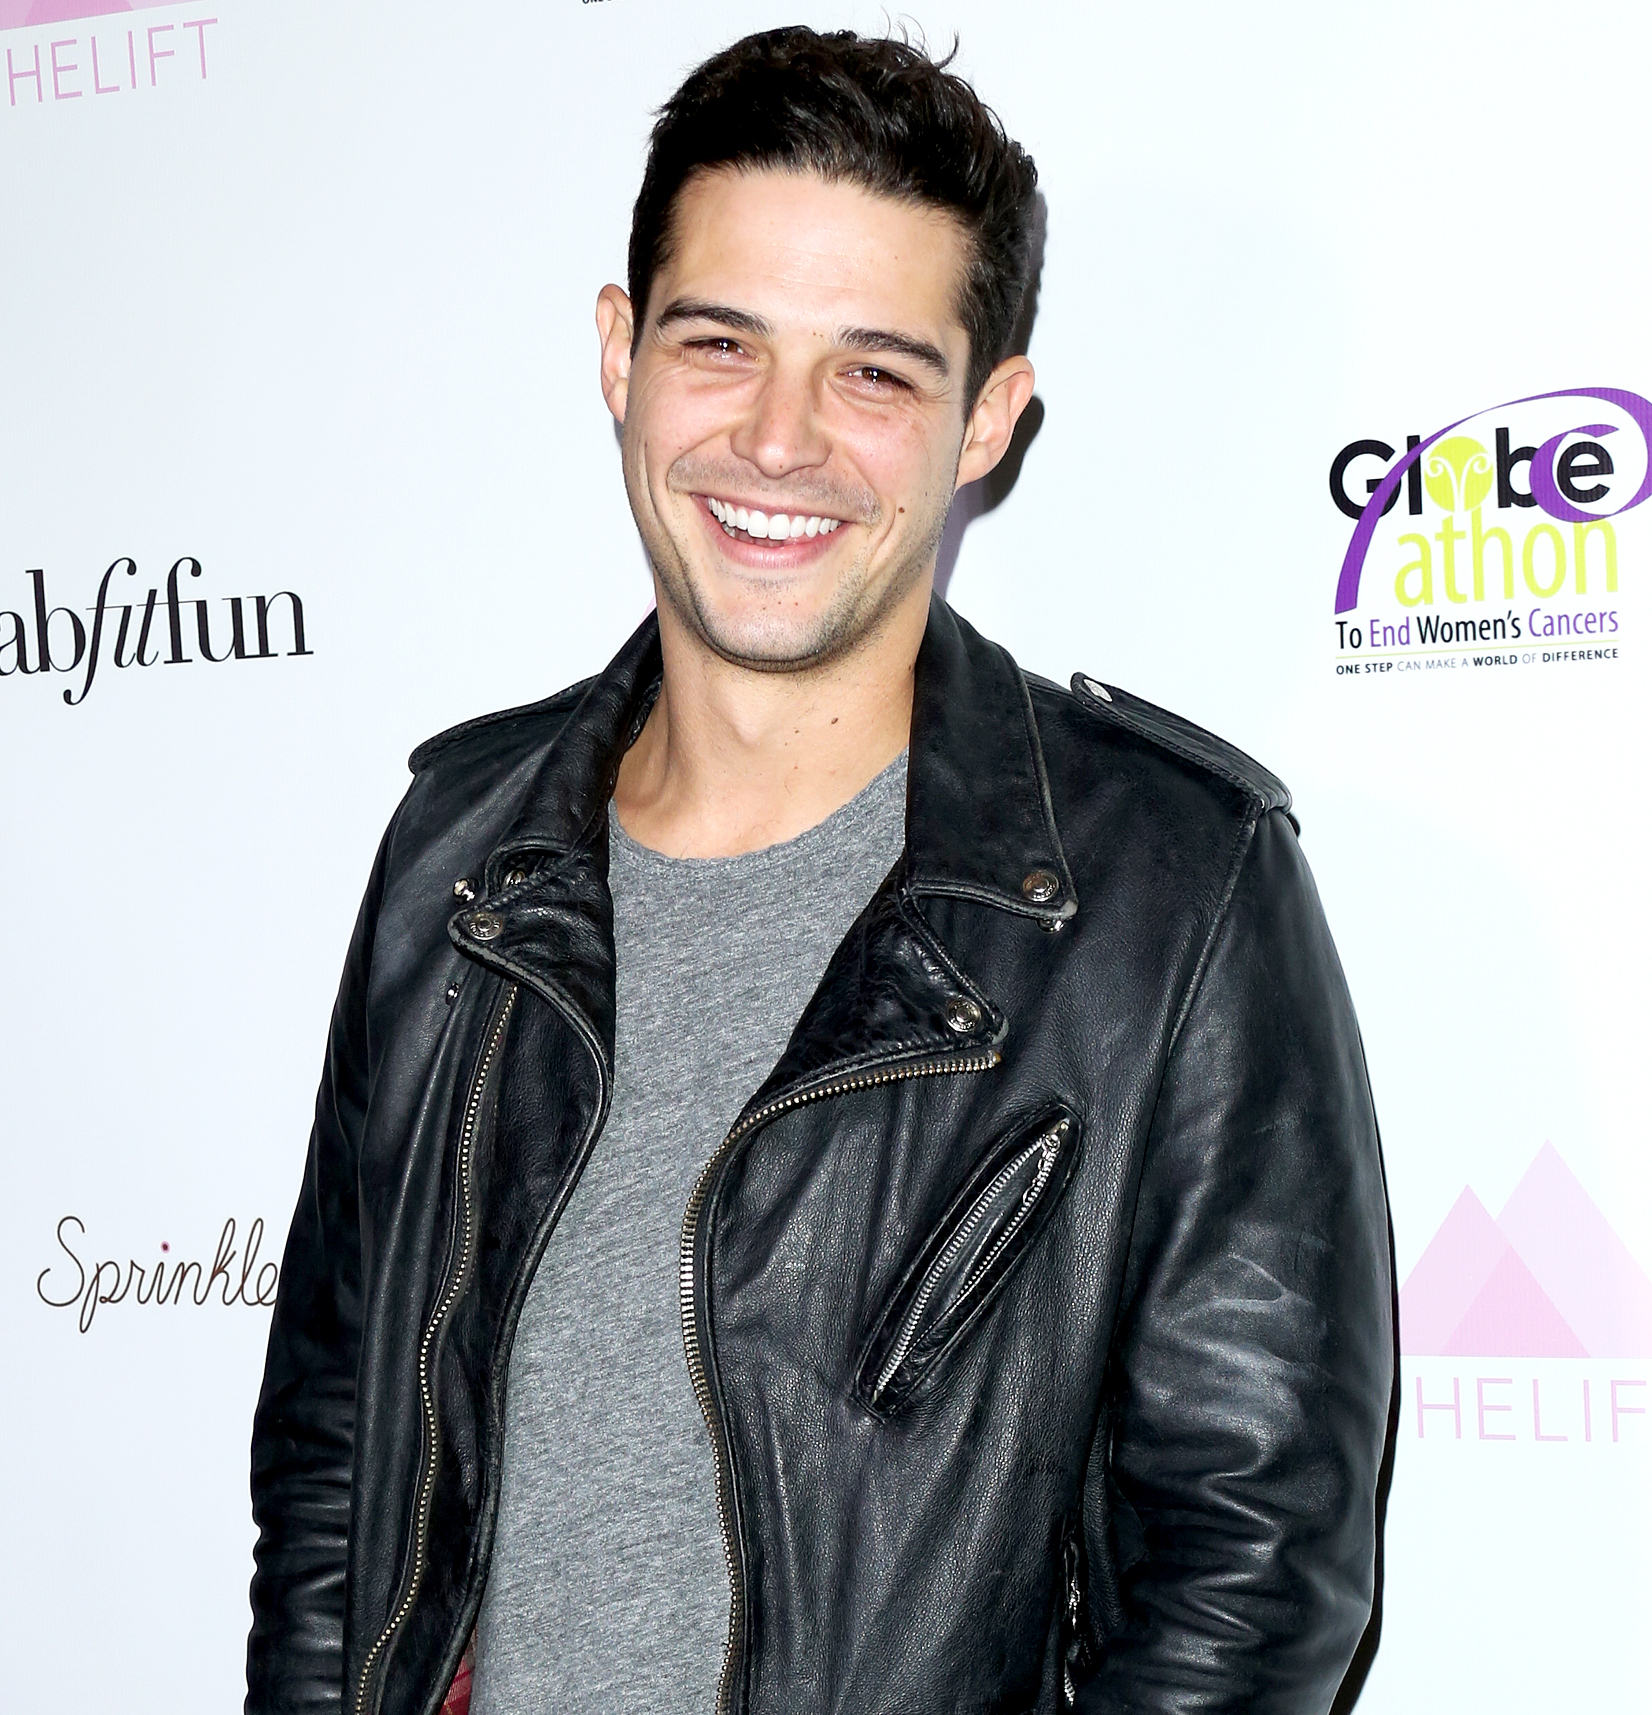 Wells Adams attends the premiere party for The Bachelor Charity at The Sycamore Tavern on January 2, 2017 in Los Angeles, California.